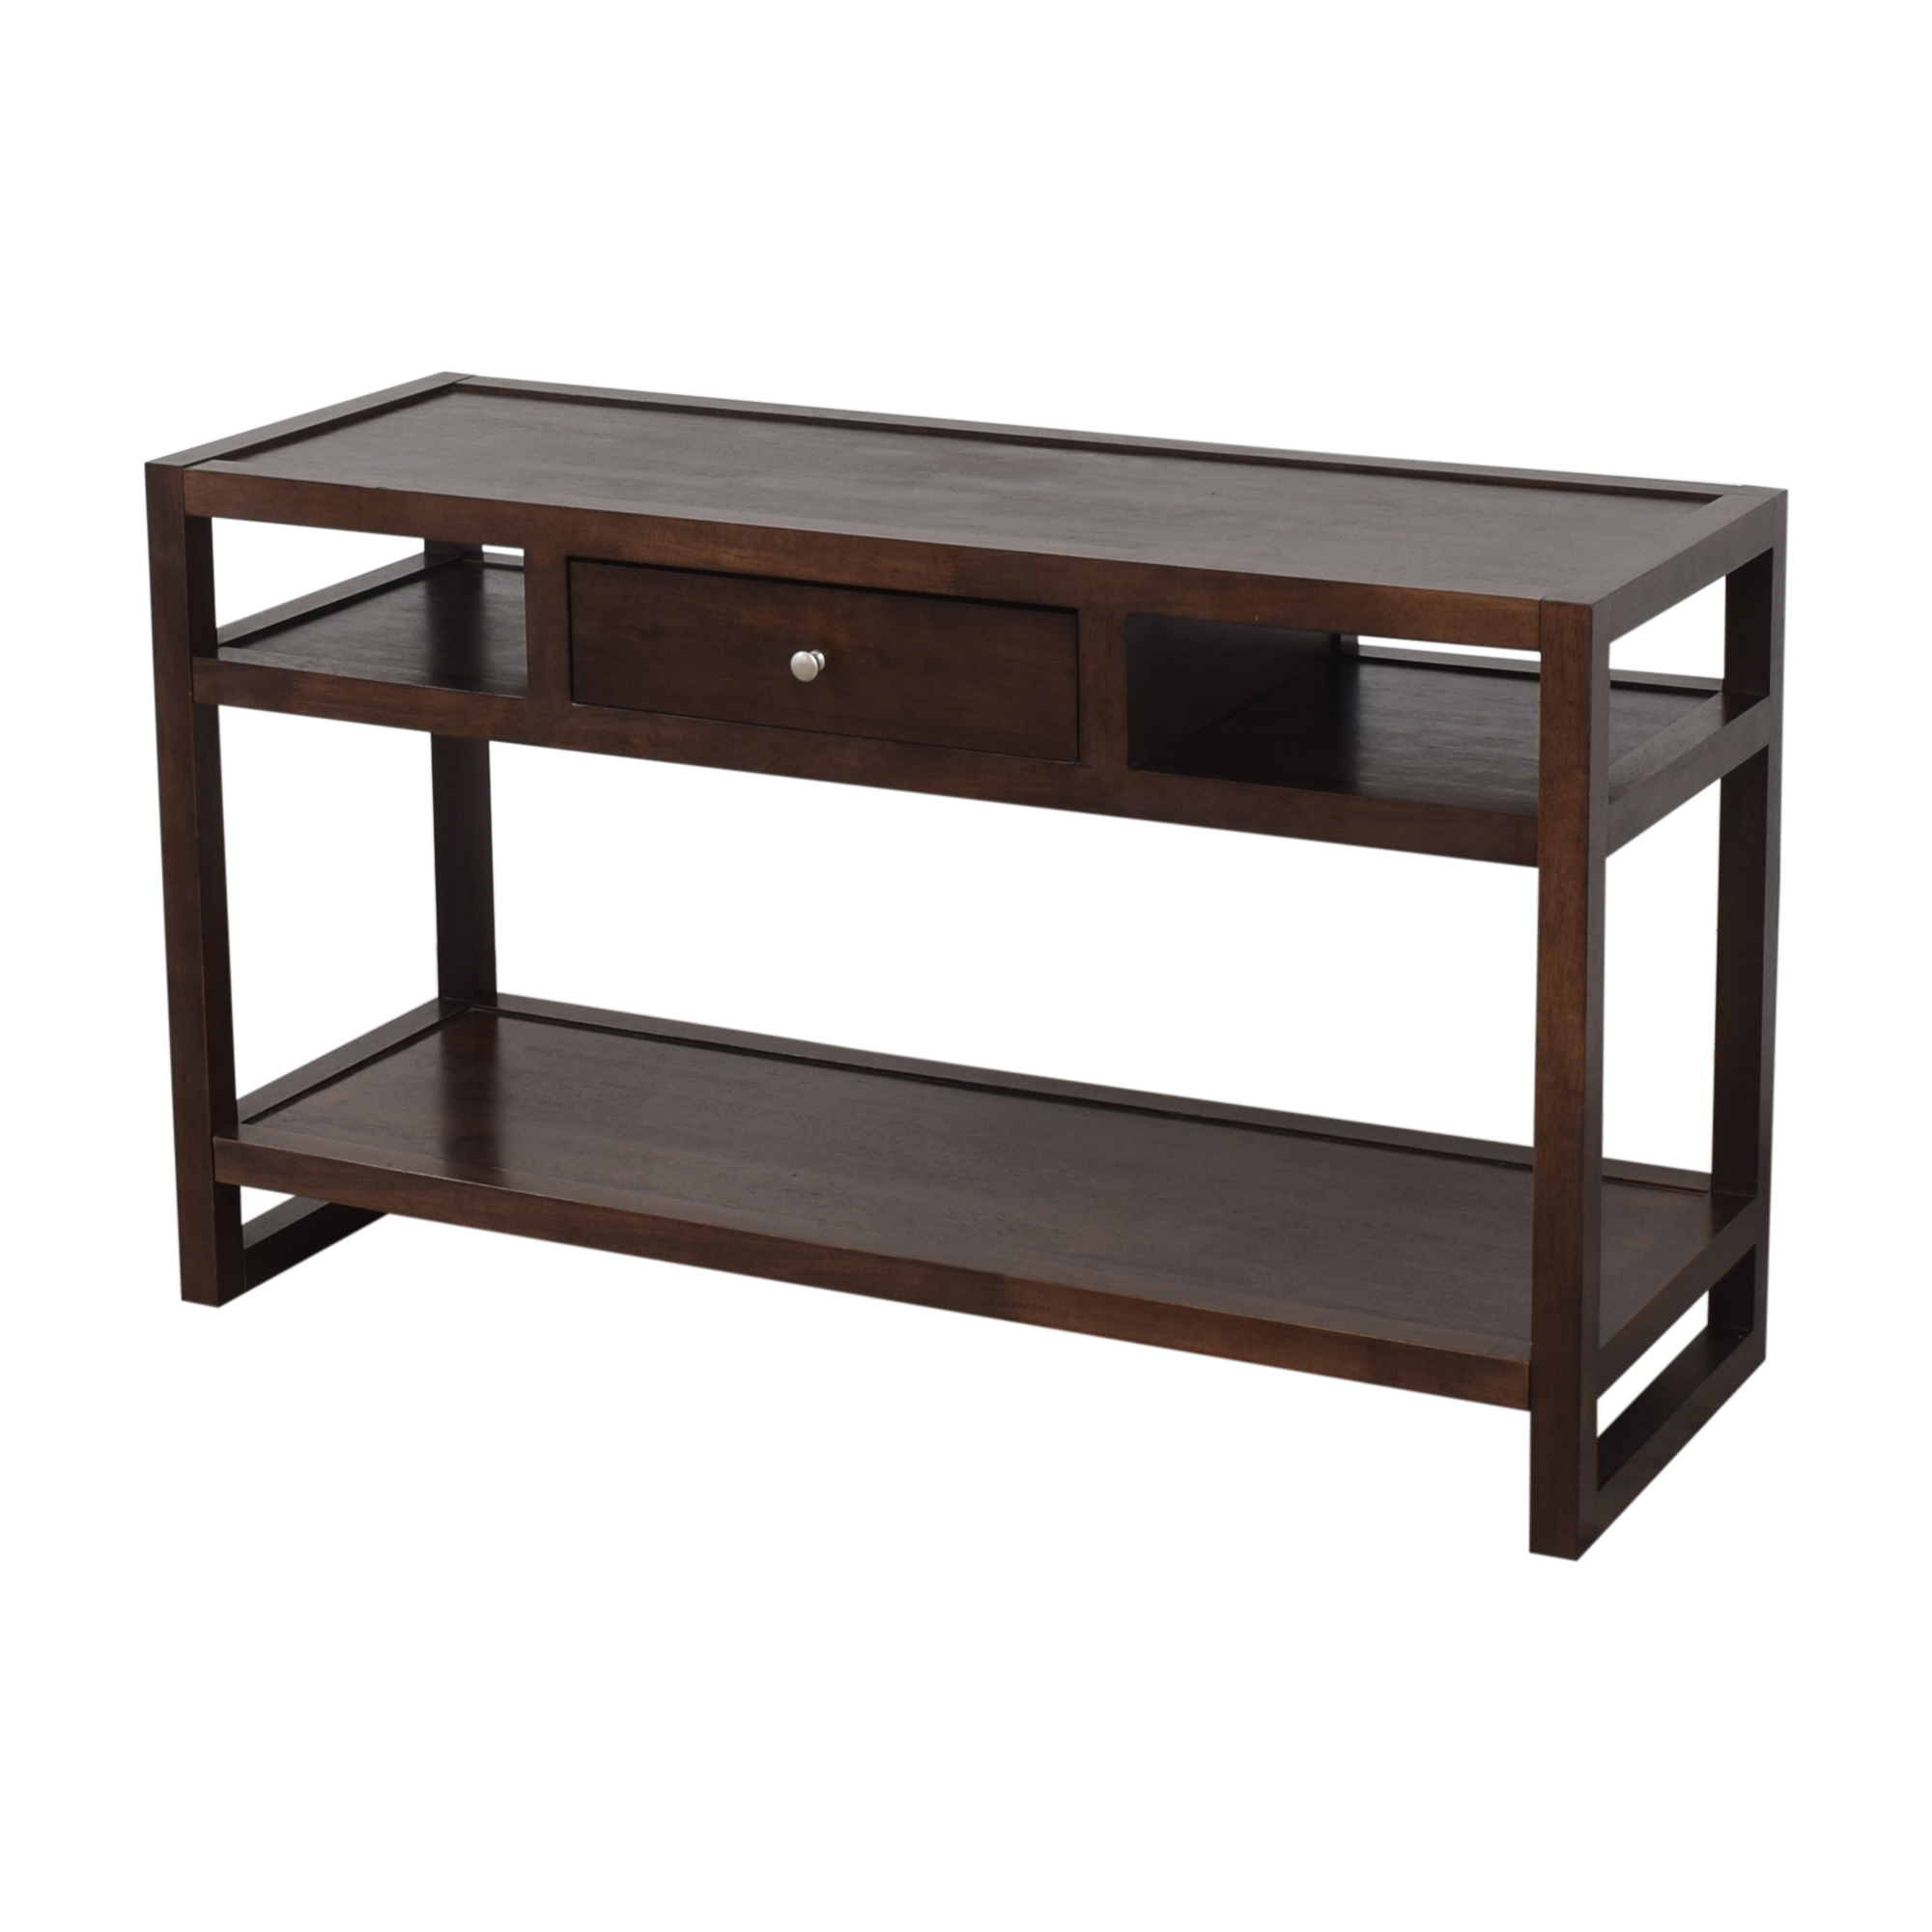 Overstock Overstock Single Drawer Console Table for sale